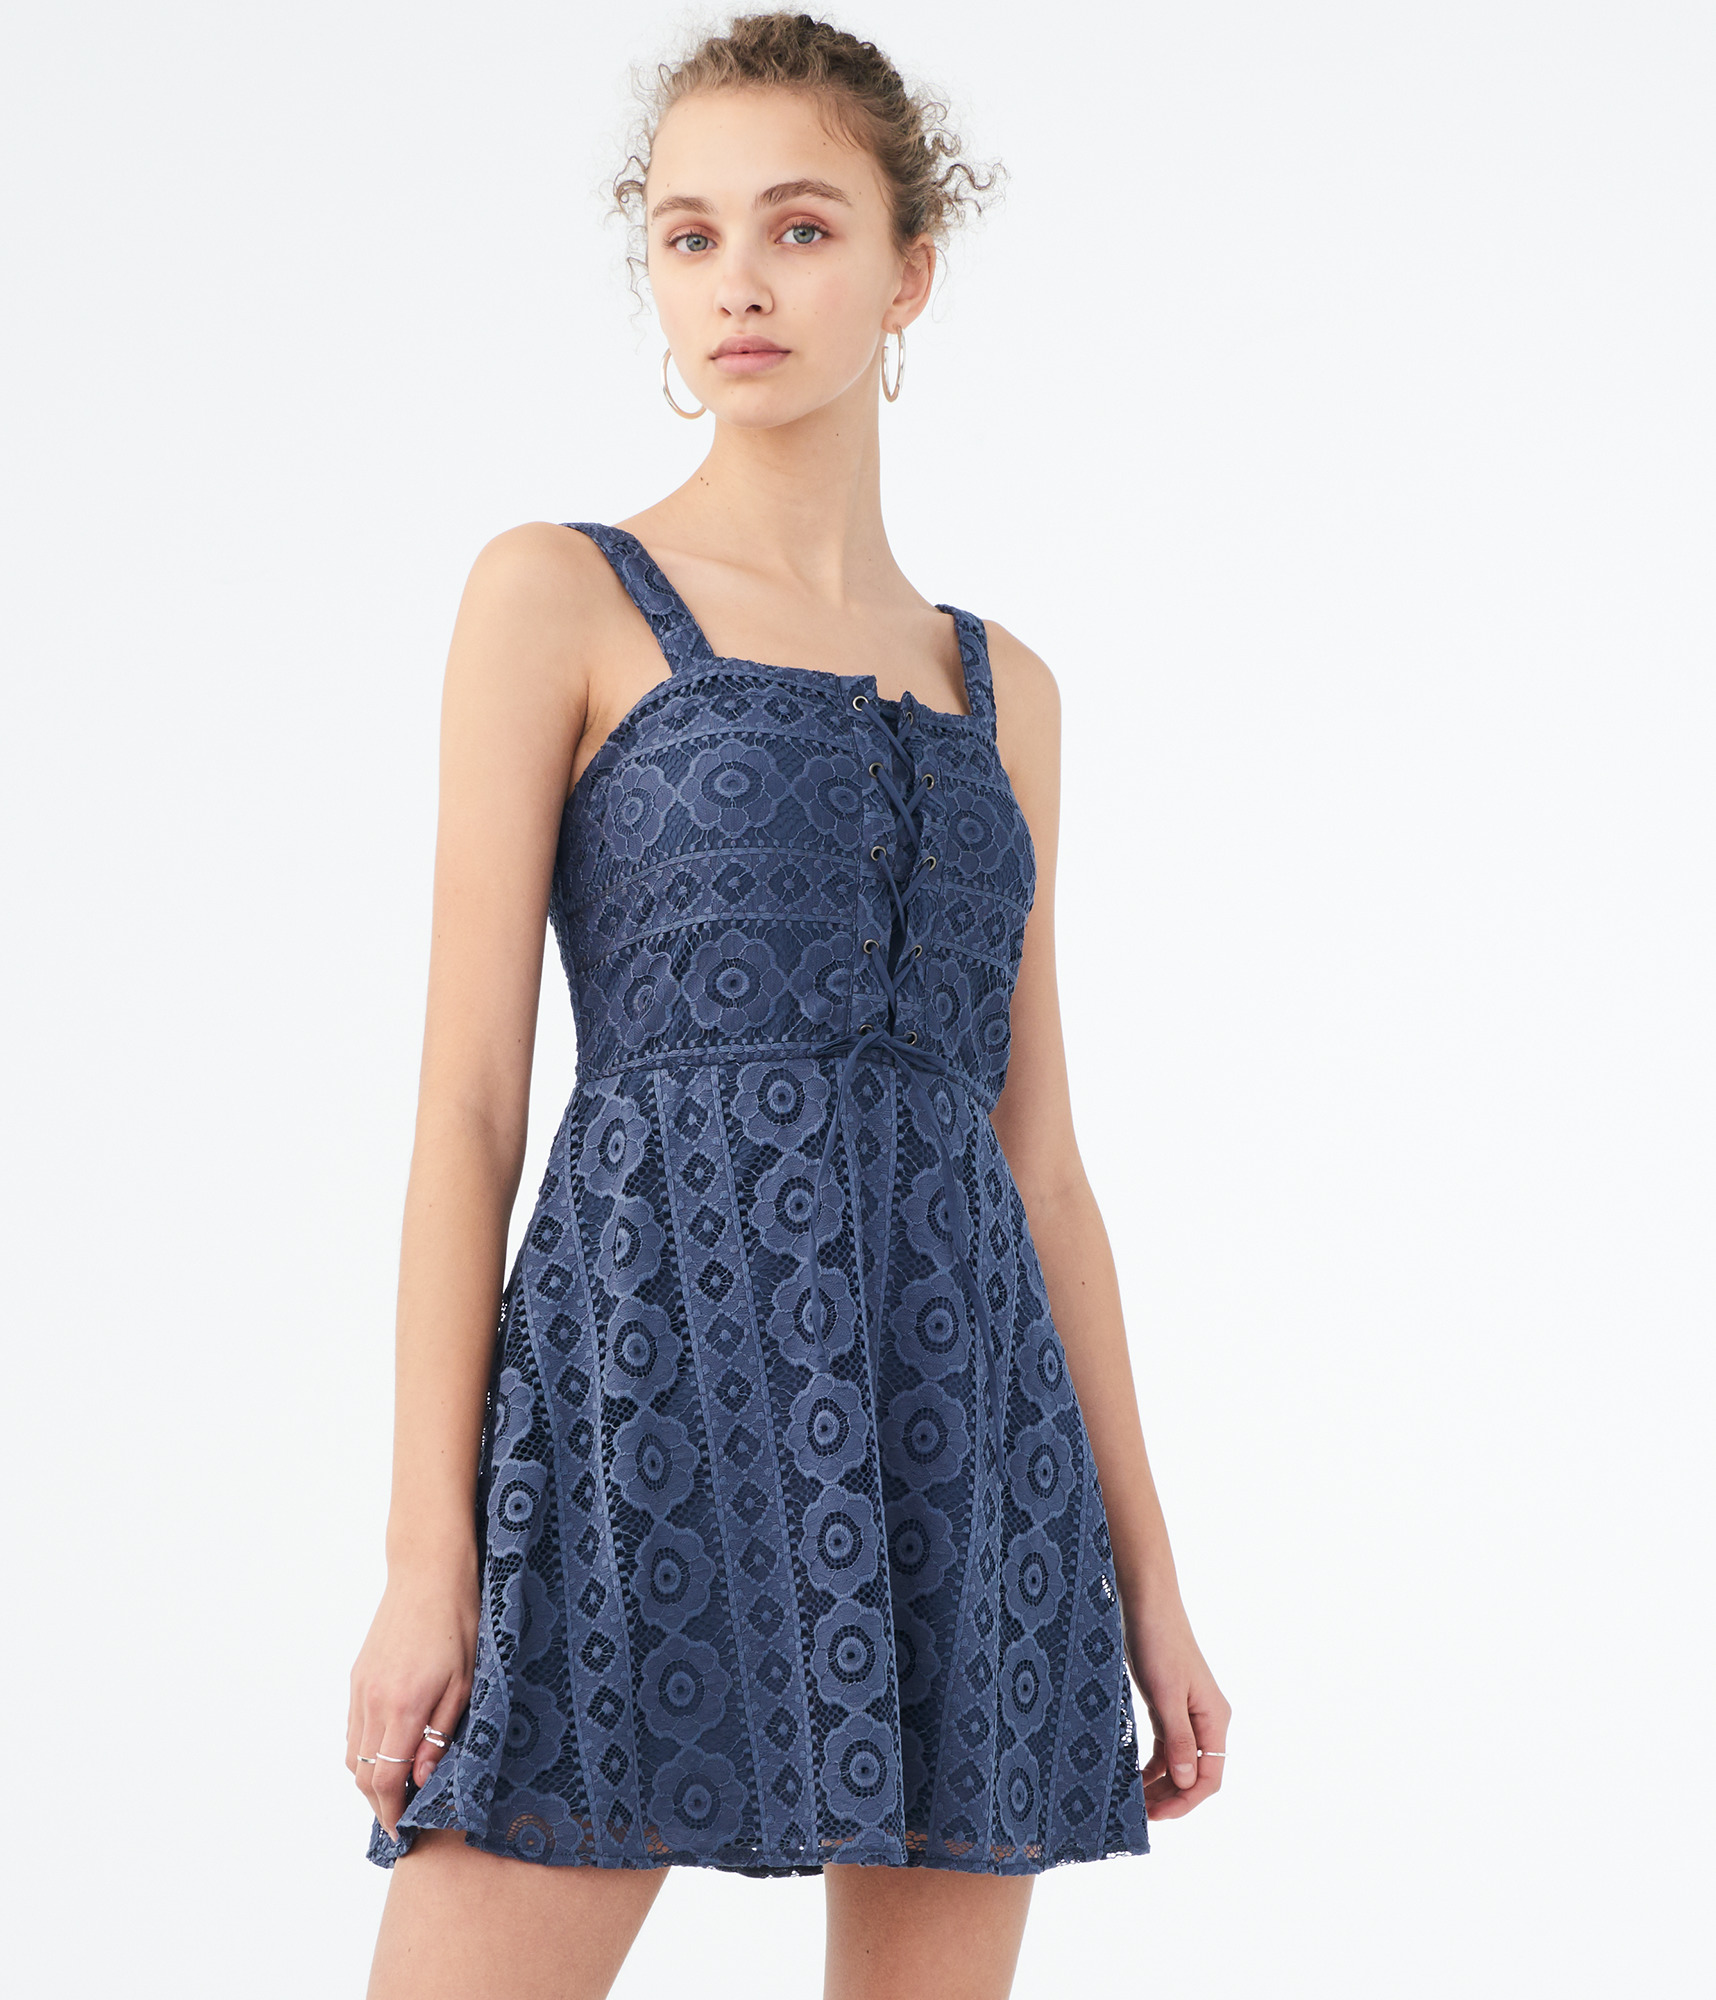 aeropostale-womens-solid-square-neck-lace-corset-fit-amp-flare-dress thumbnail 12